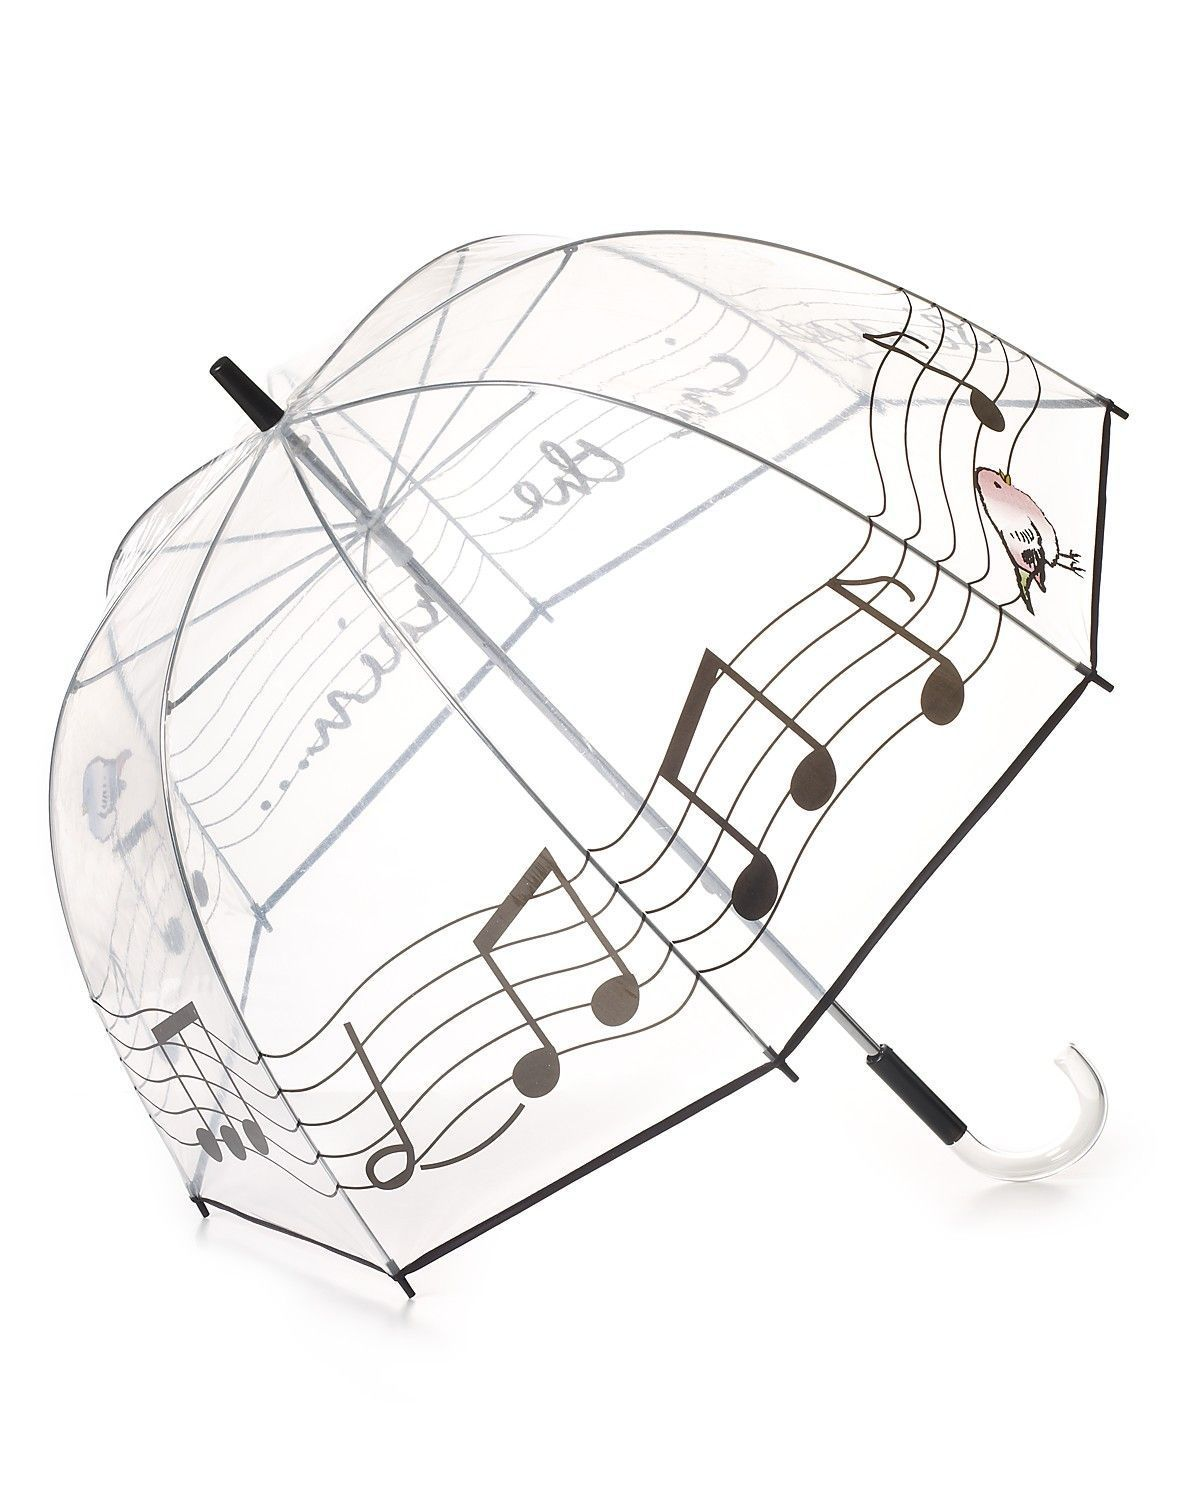 What a cheery way to keep the clouds at bay! Felix Rey Singing In the Rain Clear Umbrella | Bloomingdale's #clearumbrella What a cheery way to keep the clouds at bay! Felix Rey Singing In the Rain Clear Umbrella | Bloomingdale's #clearumbrella What a cheery way to keep the clouds at bay! Felix Rey Singing In the Rain Clear Umbrella | Bloomingdale's #clearumbrella What a cheery way to keep the clouds at bay! Felix Rey Singing In the Rain Clear Umbrella | Bloomingdale's #clearumbrella